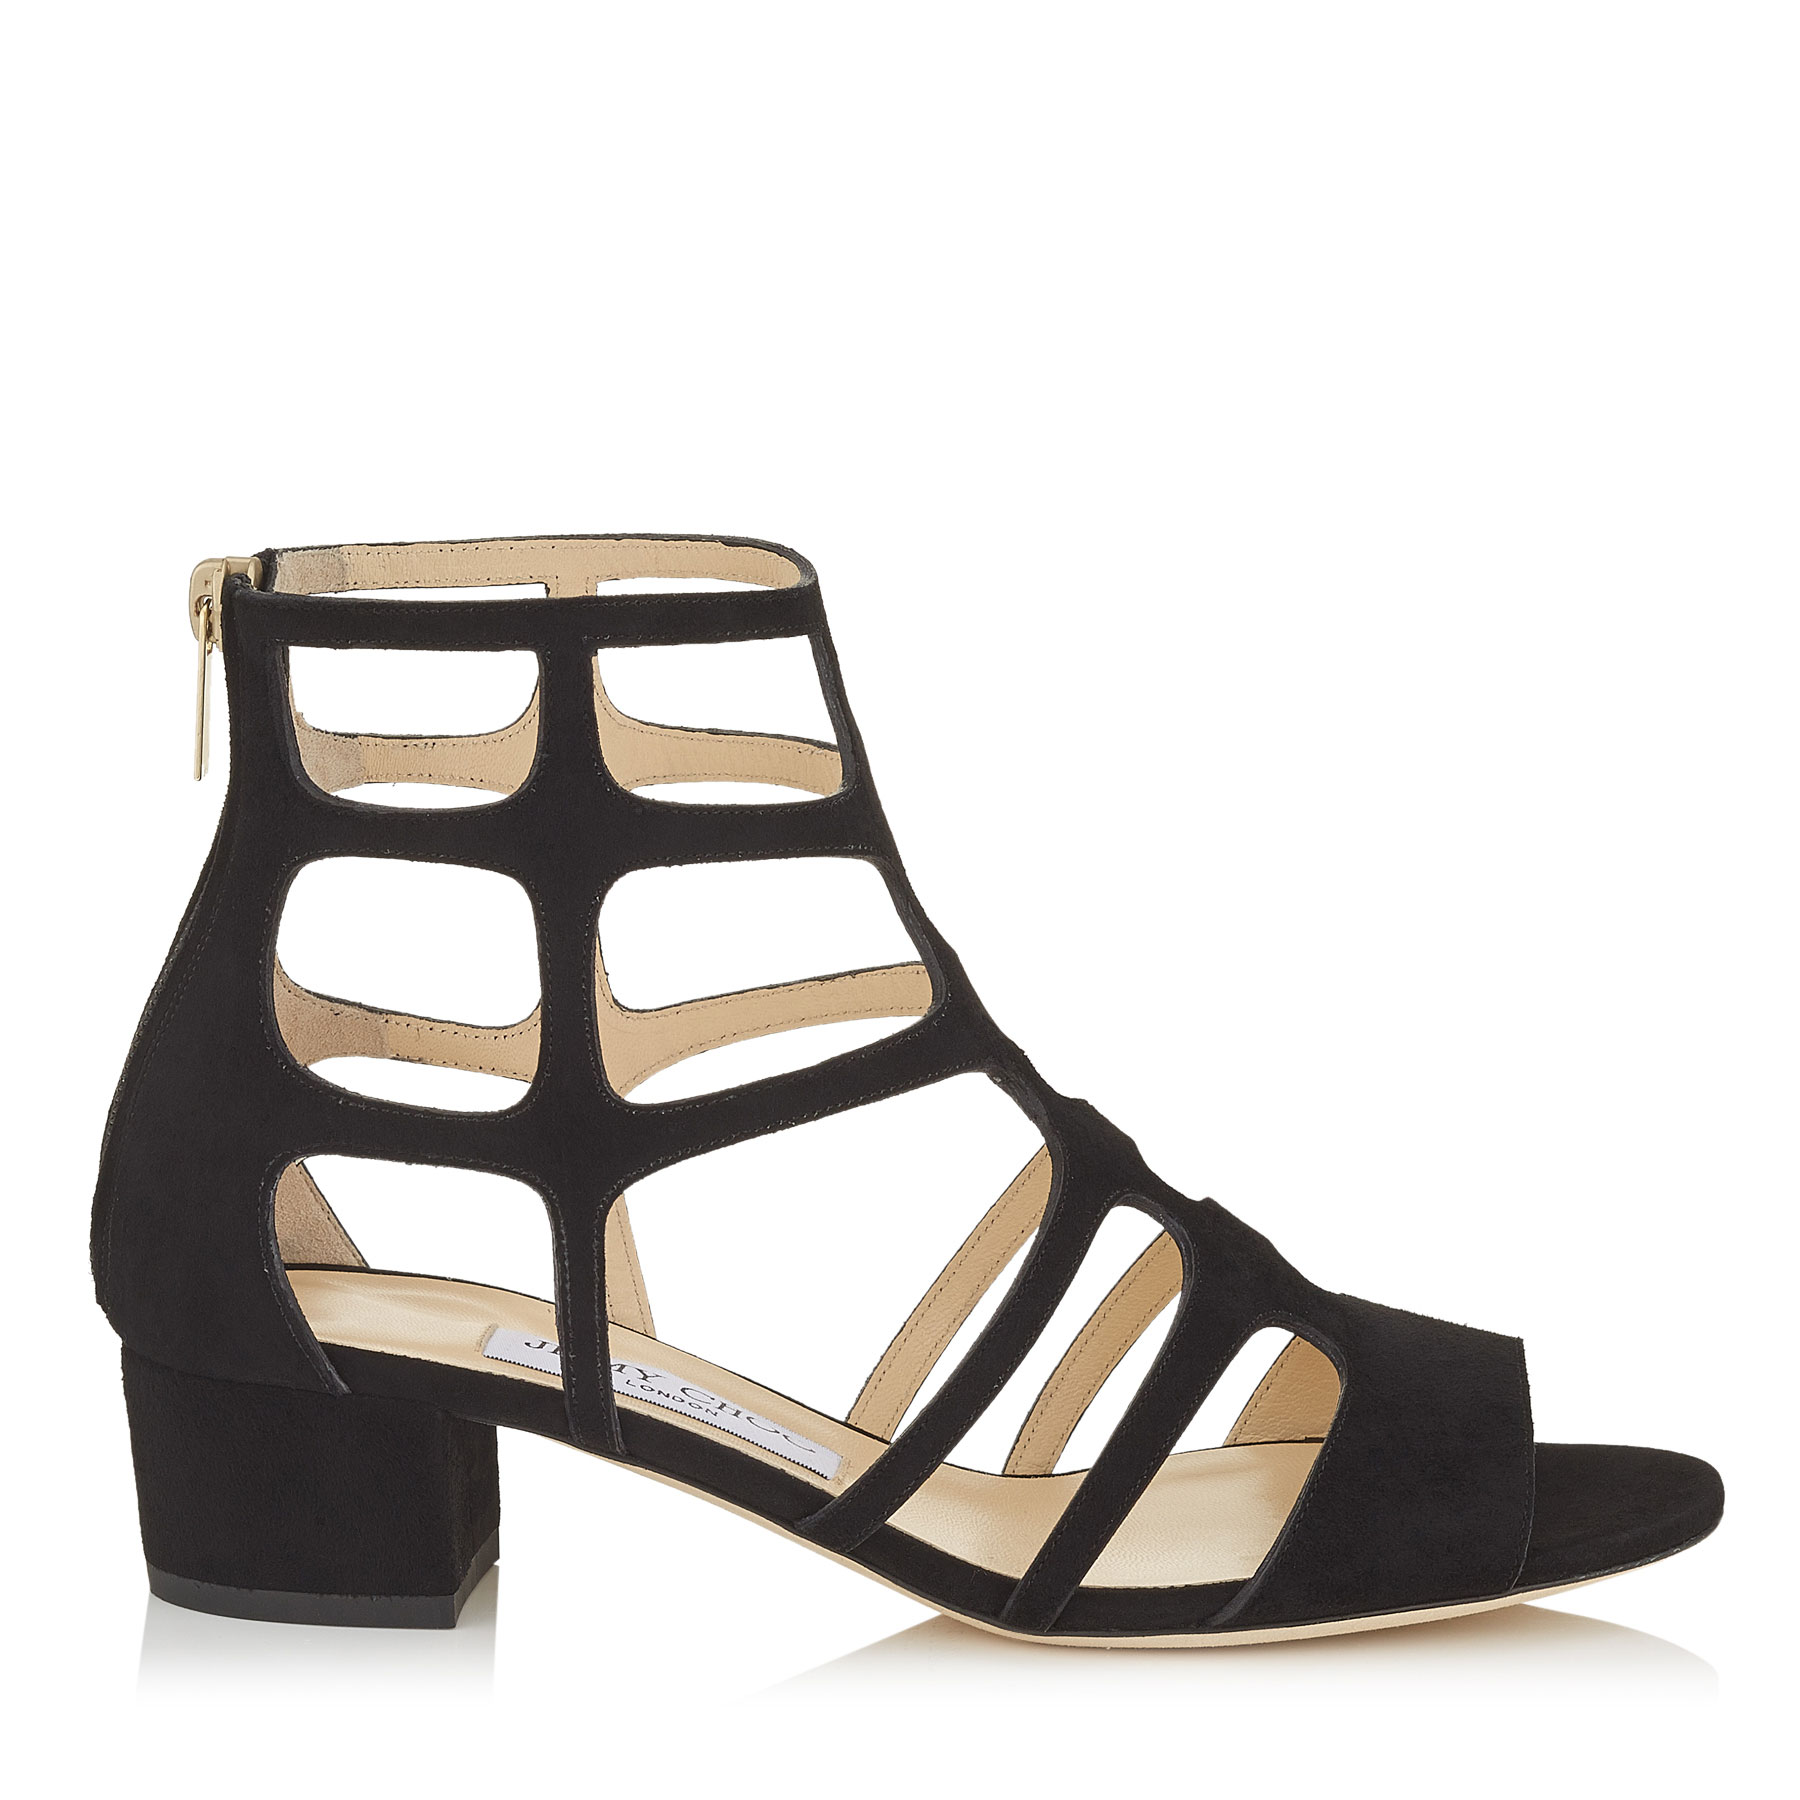 REN 35 Black Suede Sandals by Jimmy Choo